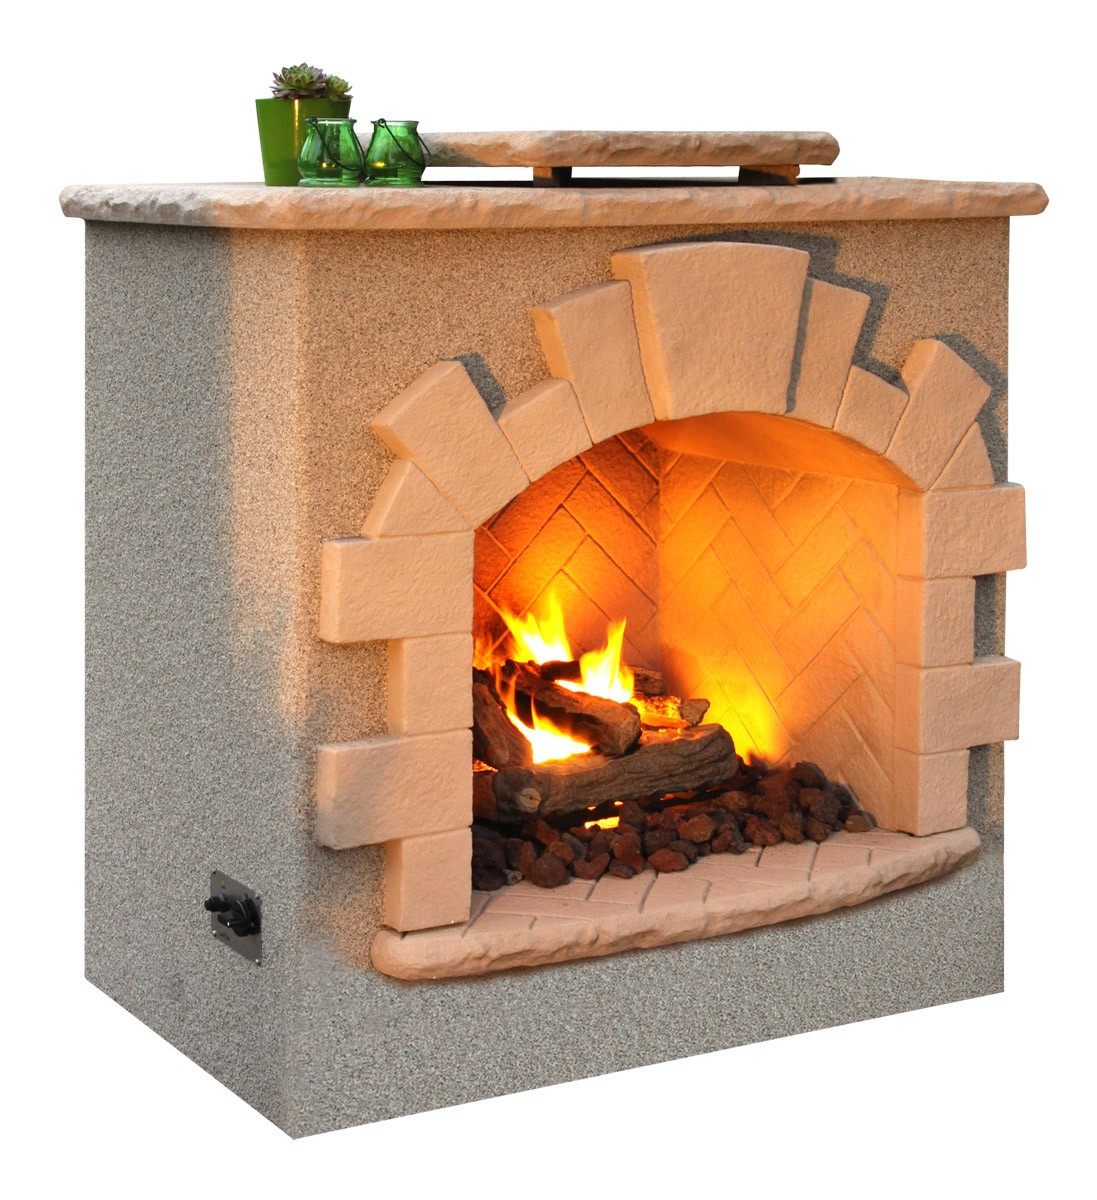 California Hot Spas Cal Flame Outdoor Gas Fireplace Frp906 1